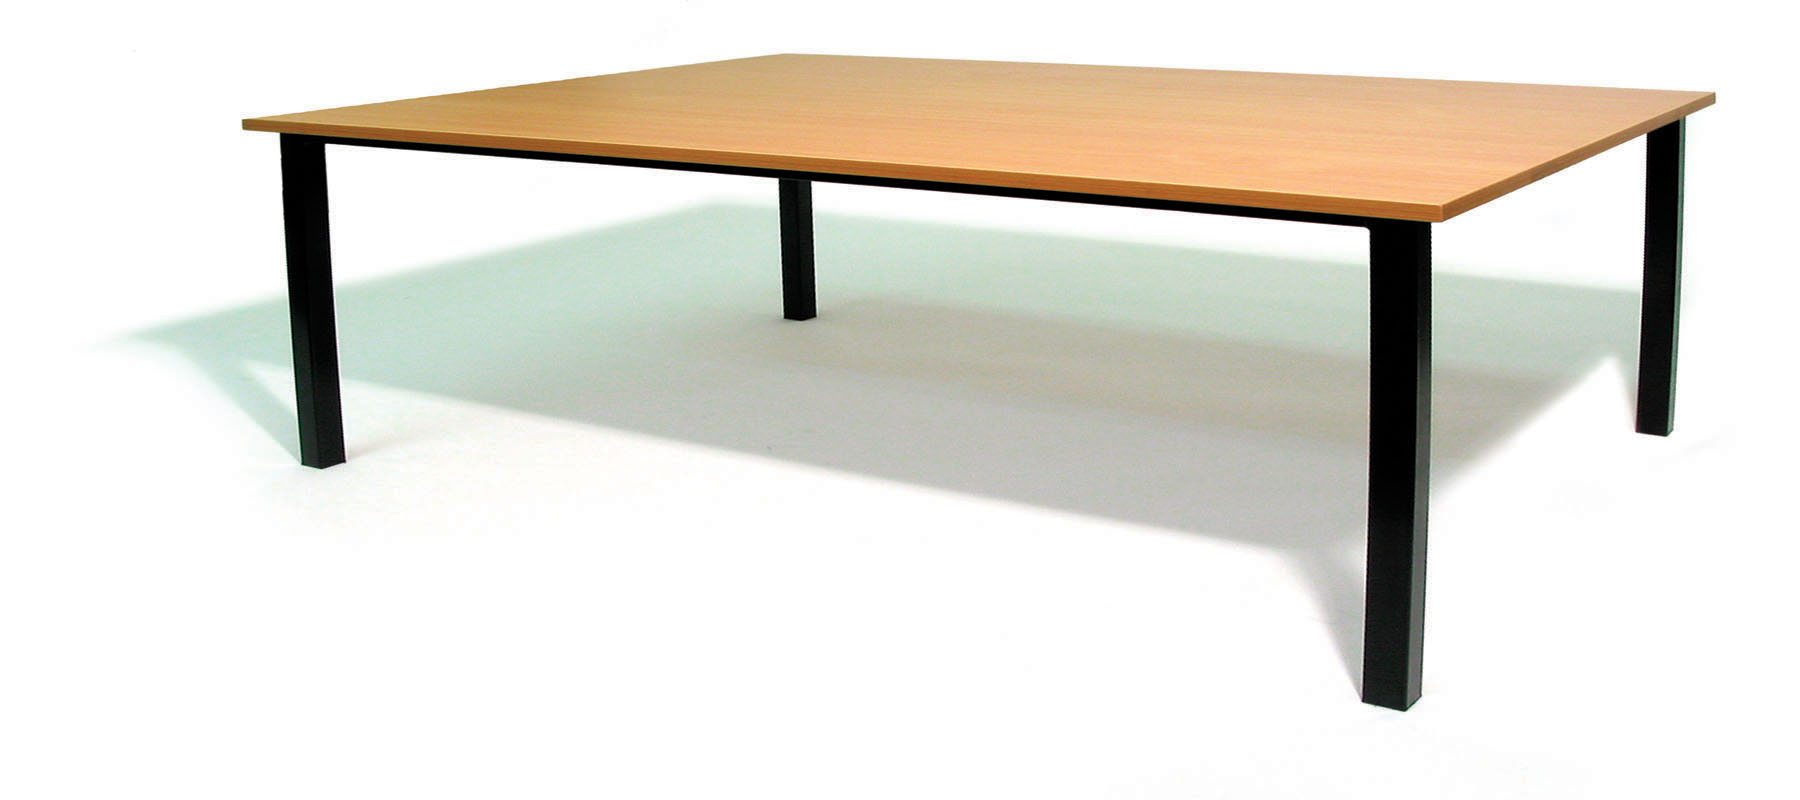 Rectangular Table - GECA